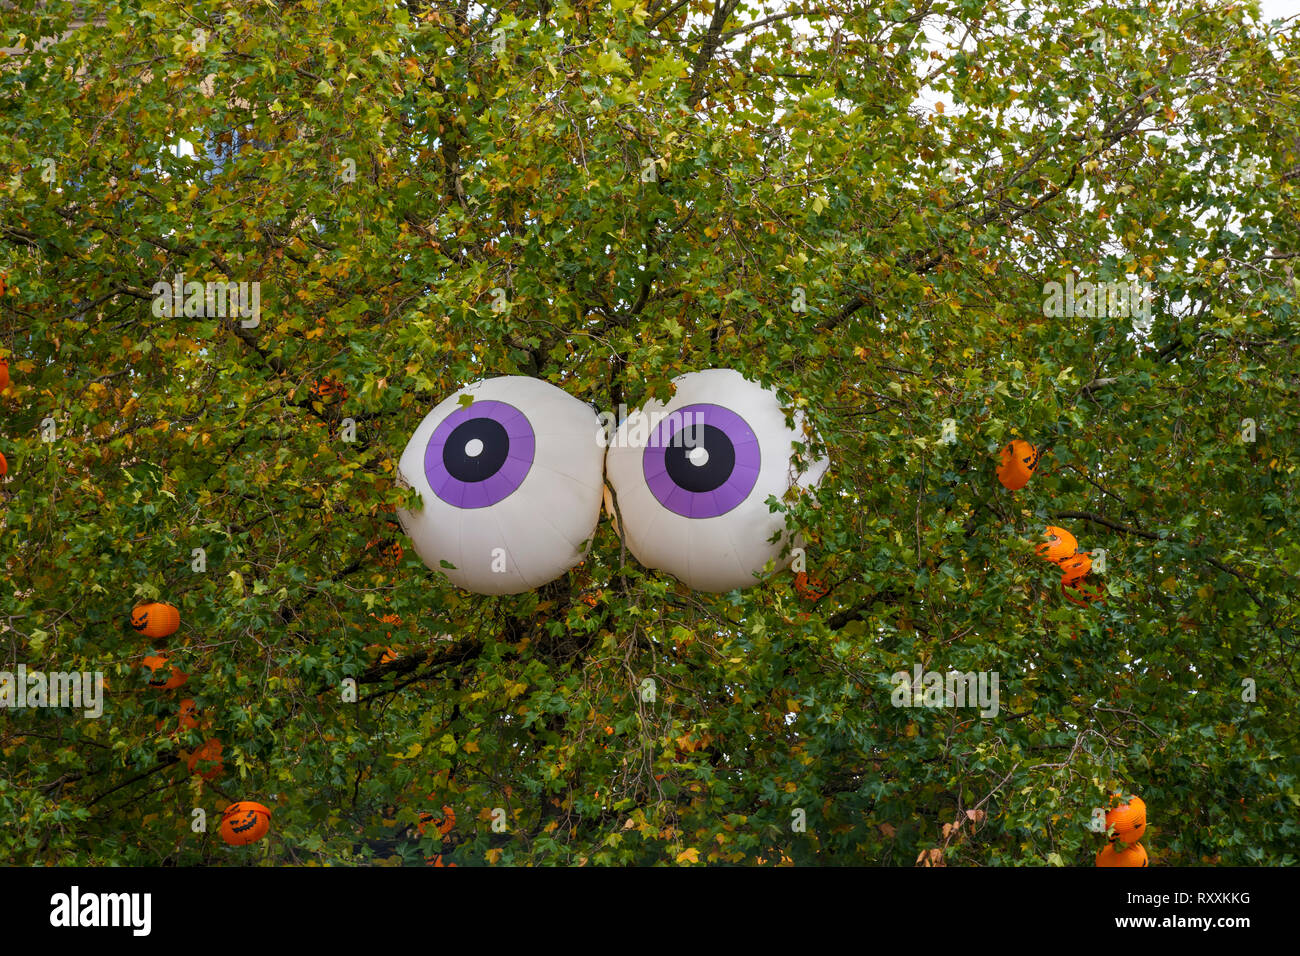 Two inflatable eyeballs installed in a tree for Halloween, St. Ann's Square, Manchester, England, UK - Stock Image